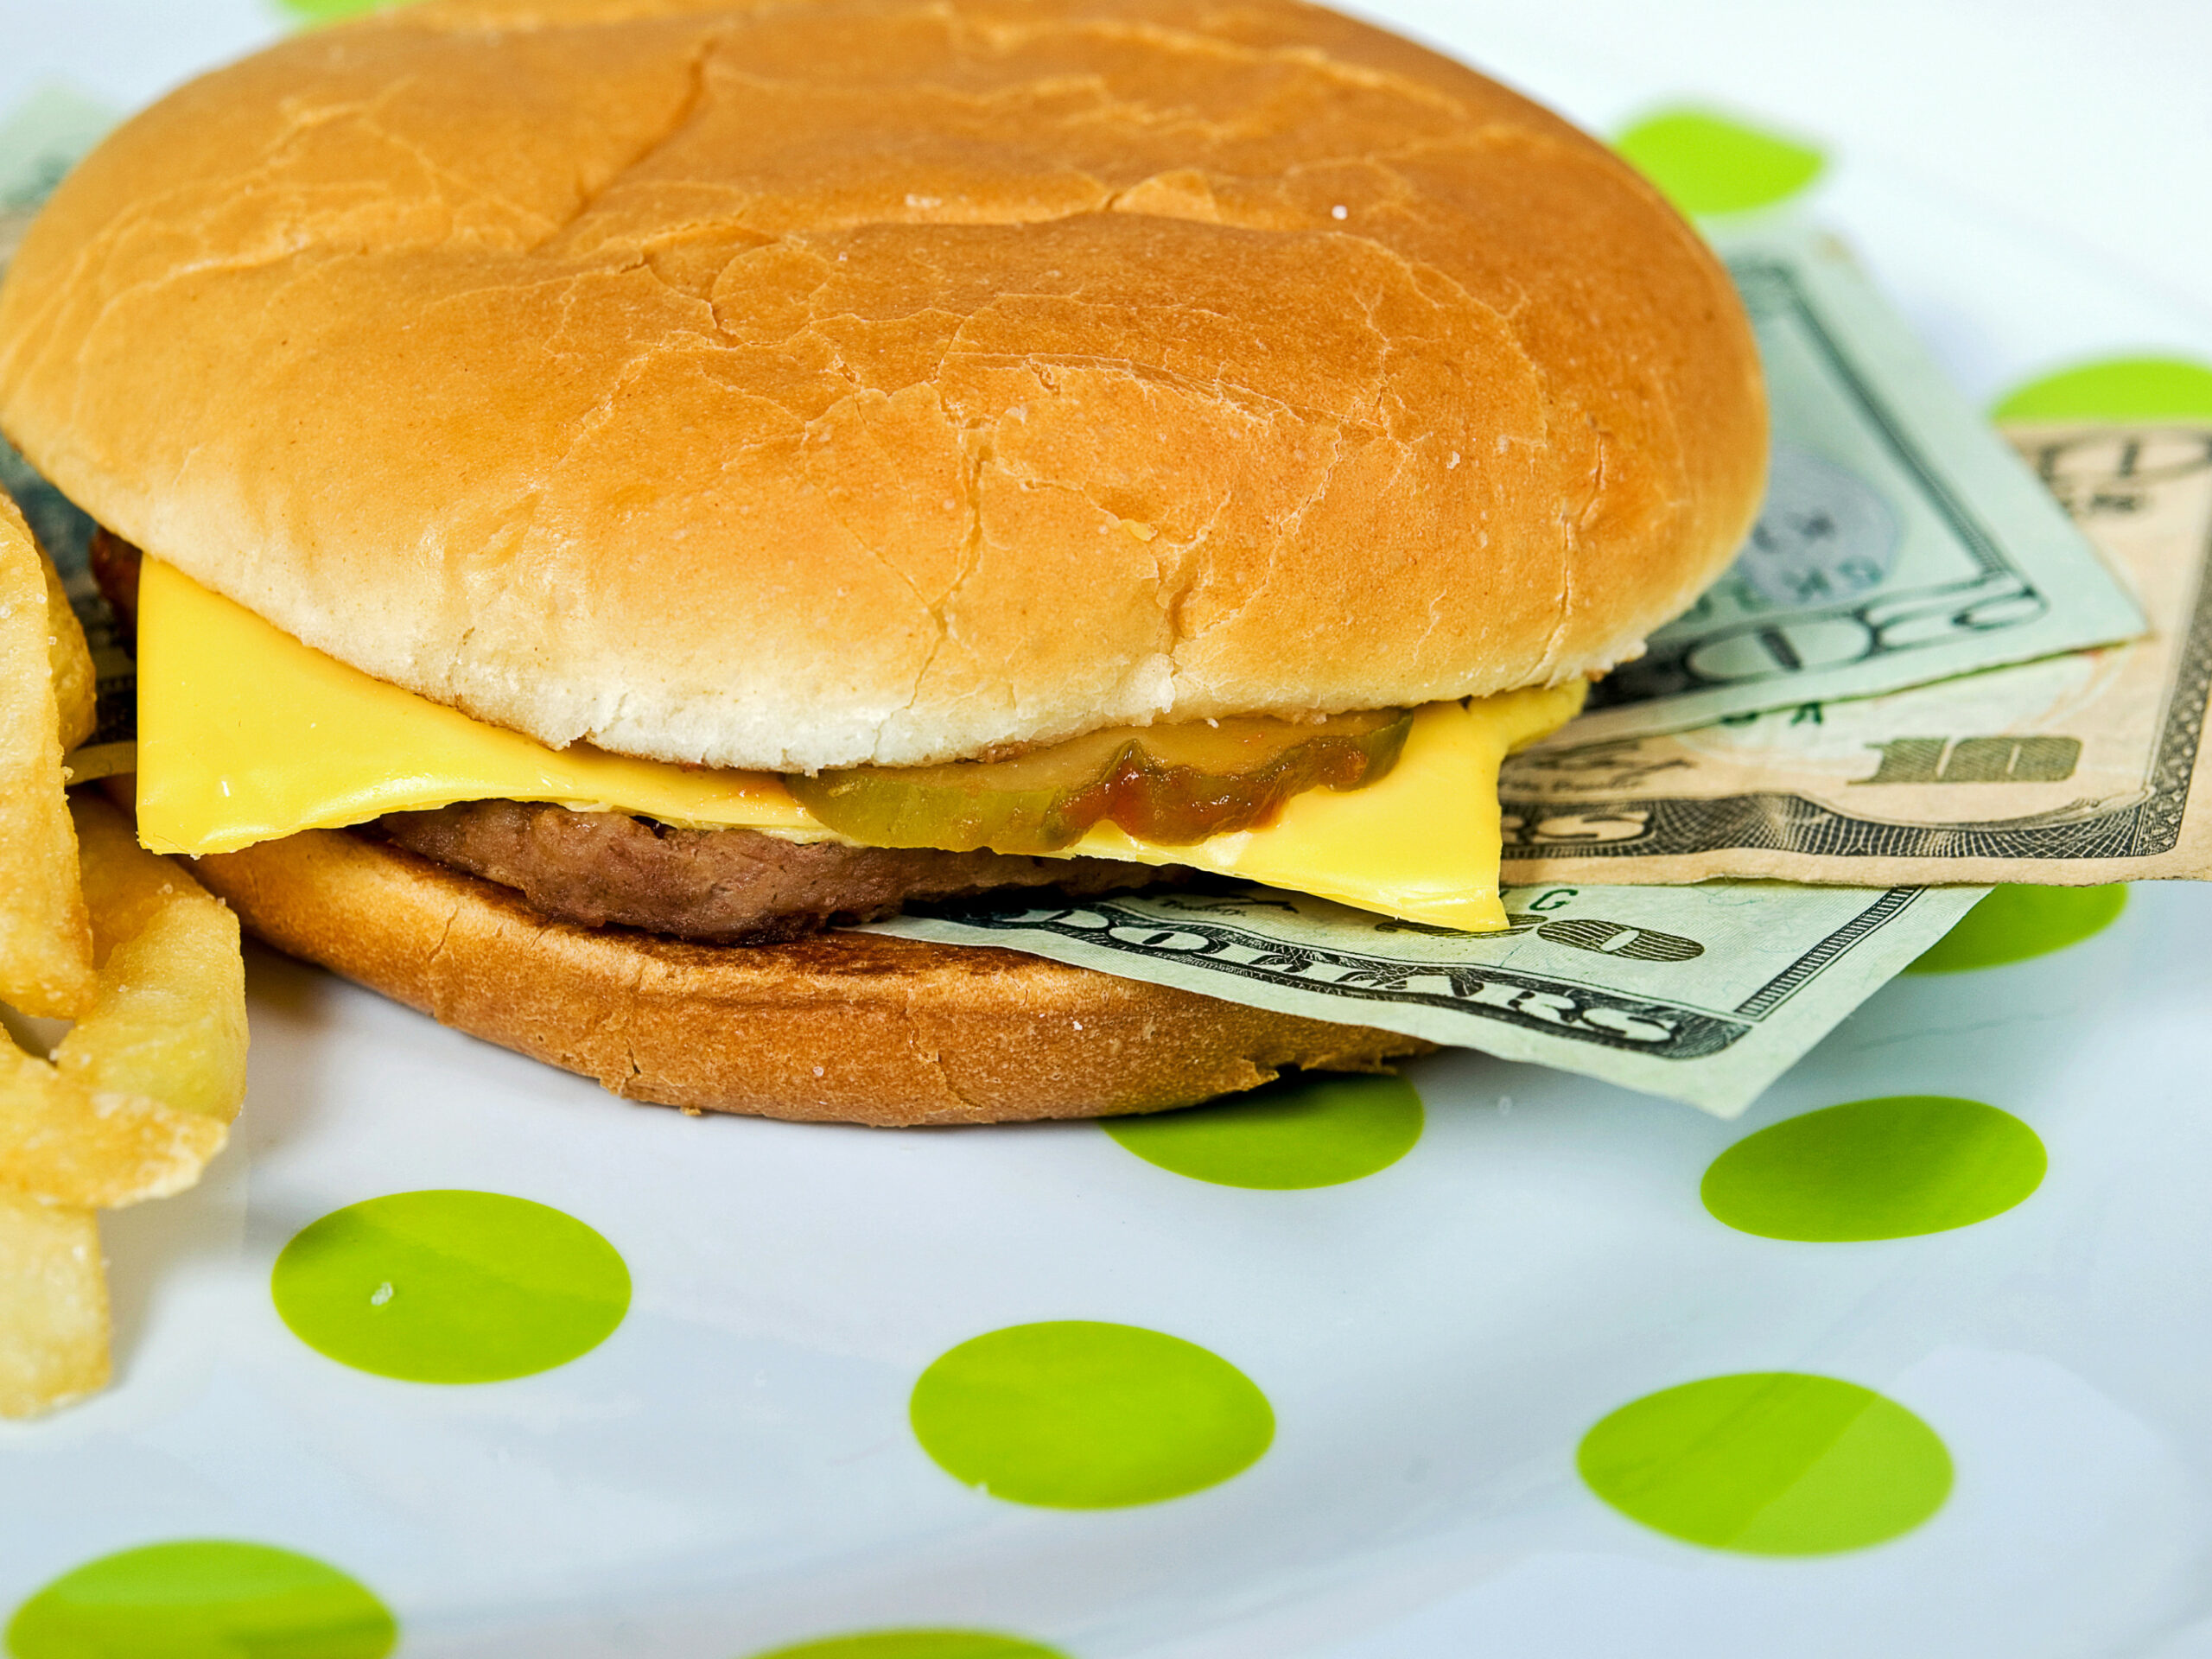 The high cost of junk food - Easy Health Options® - healthy recipes junk food